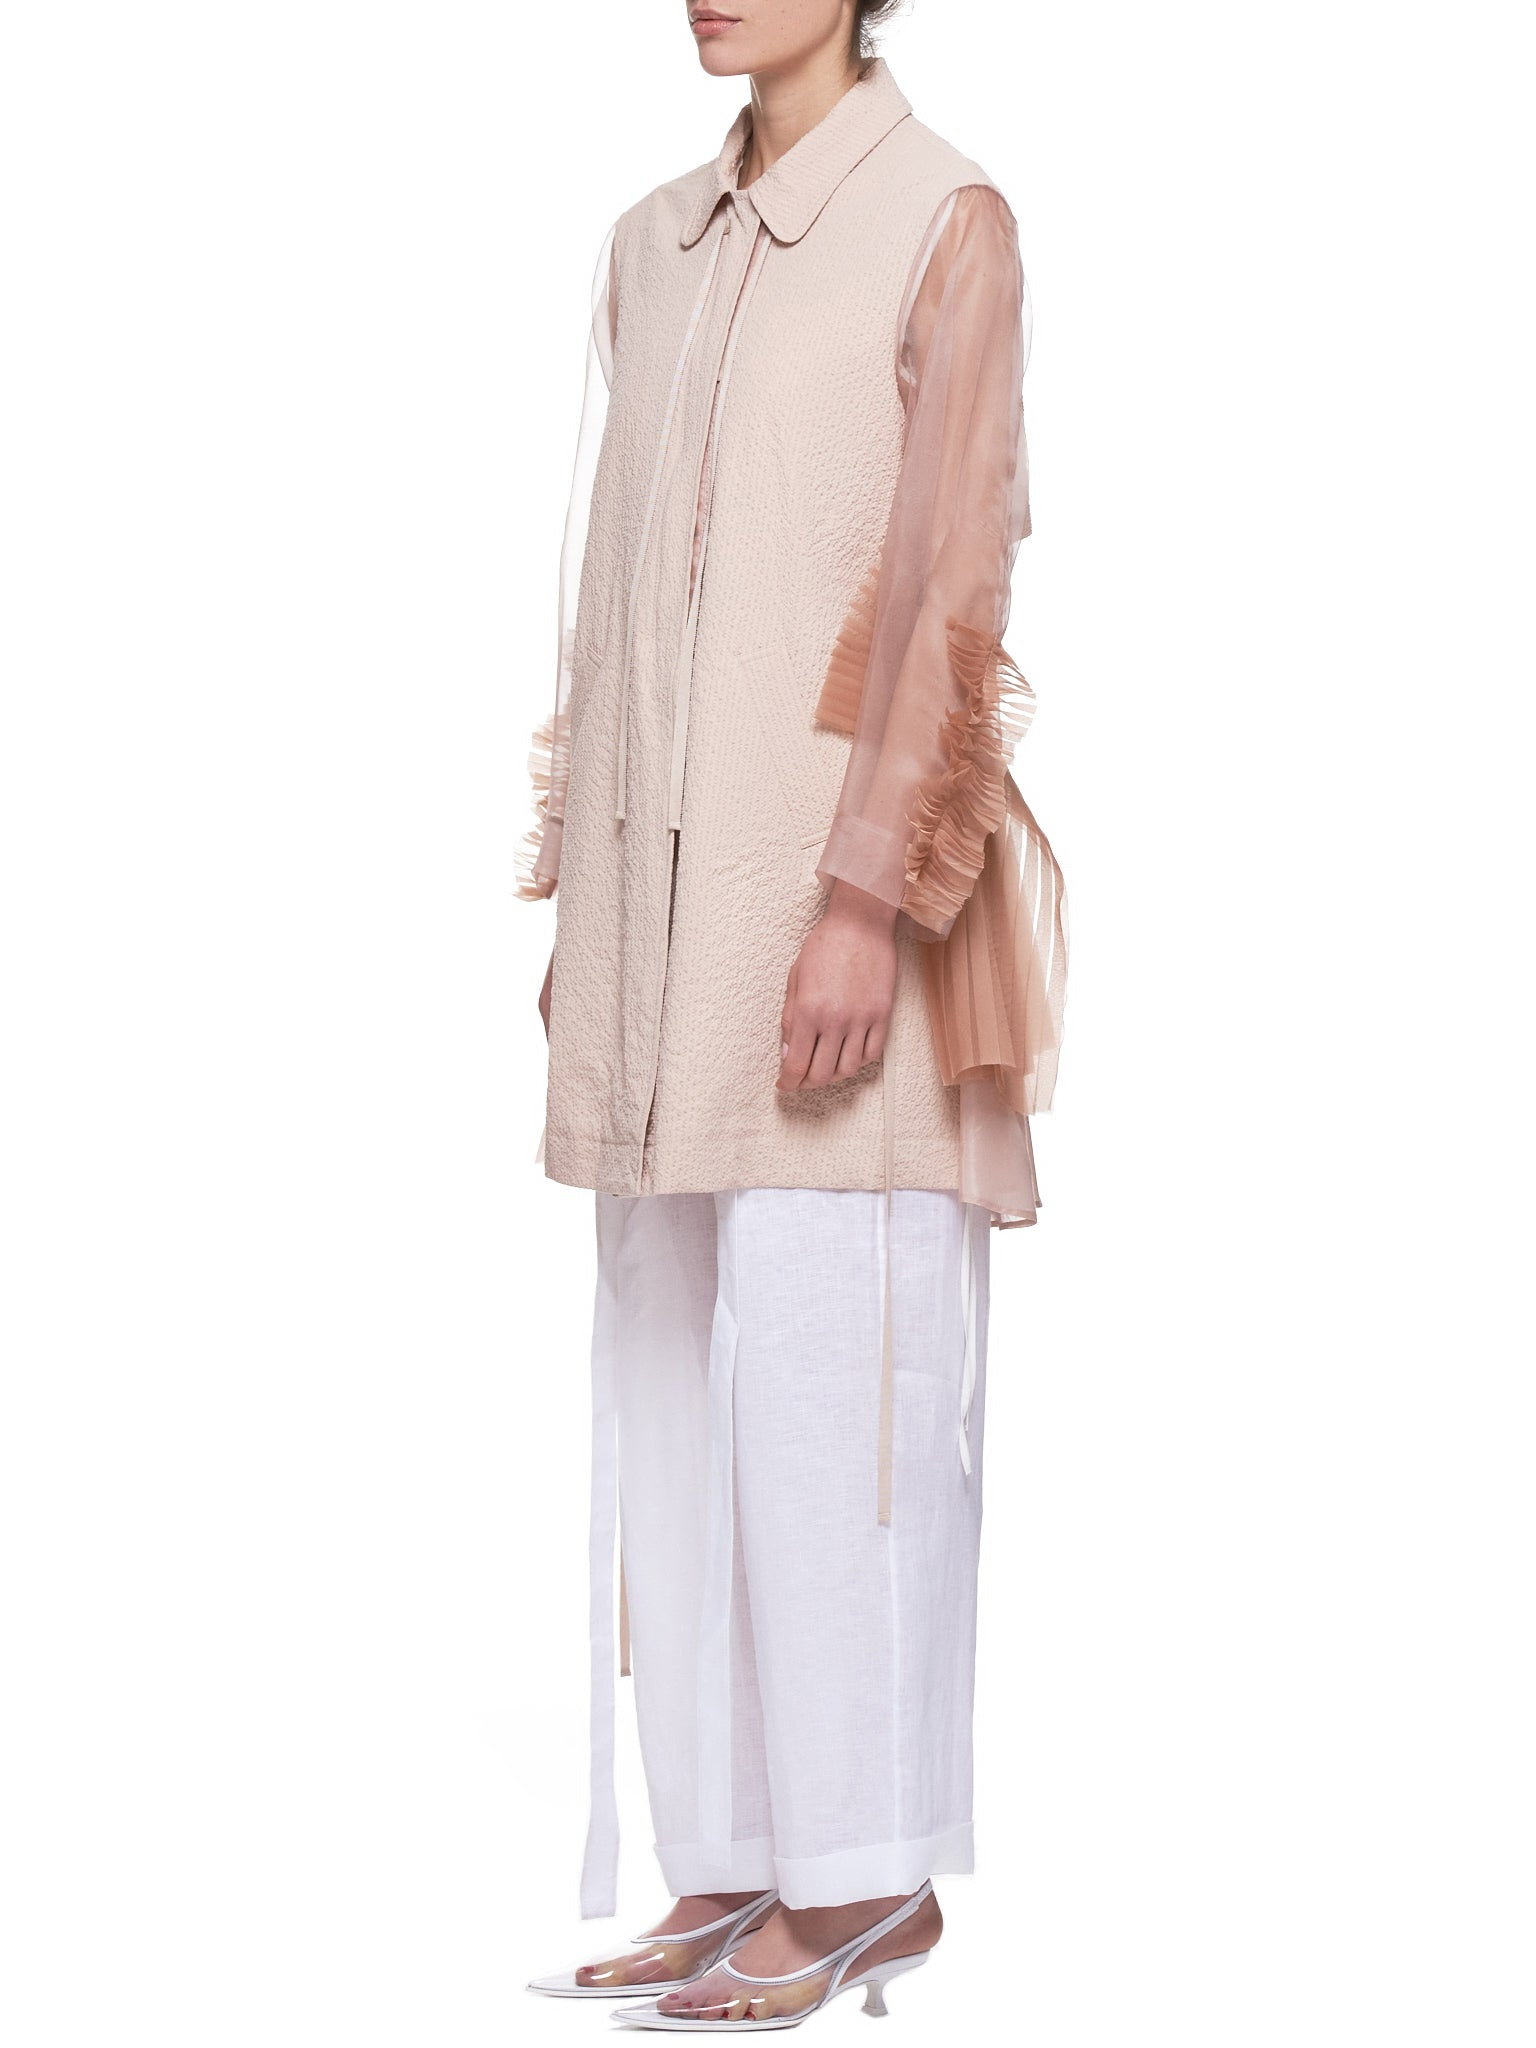 Shanshan Ruan Trench Coat - Hlorenzo Side